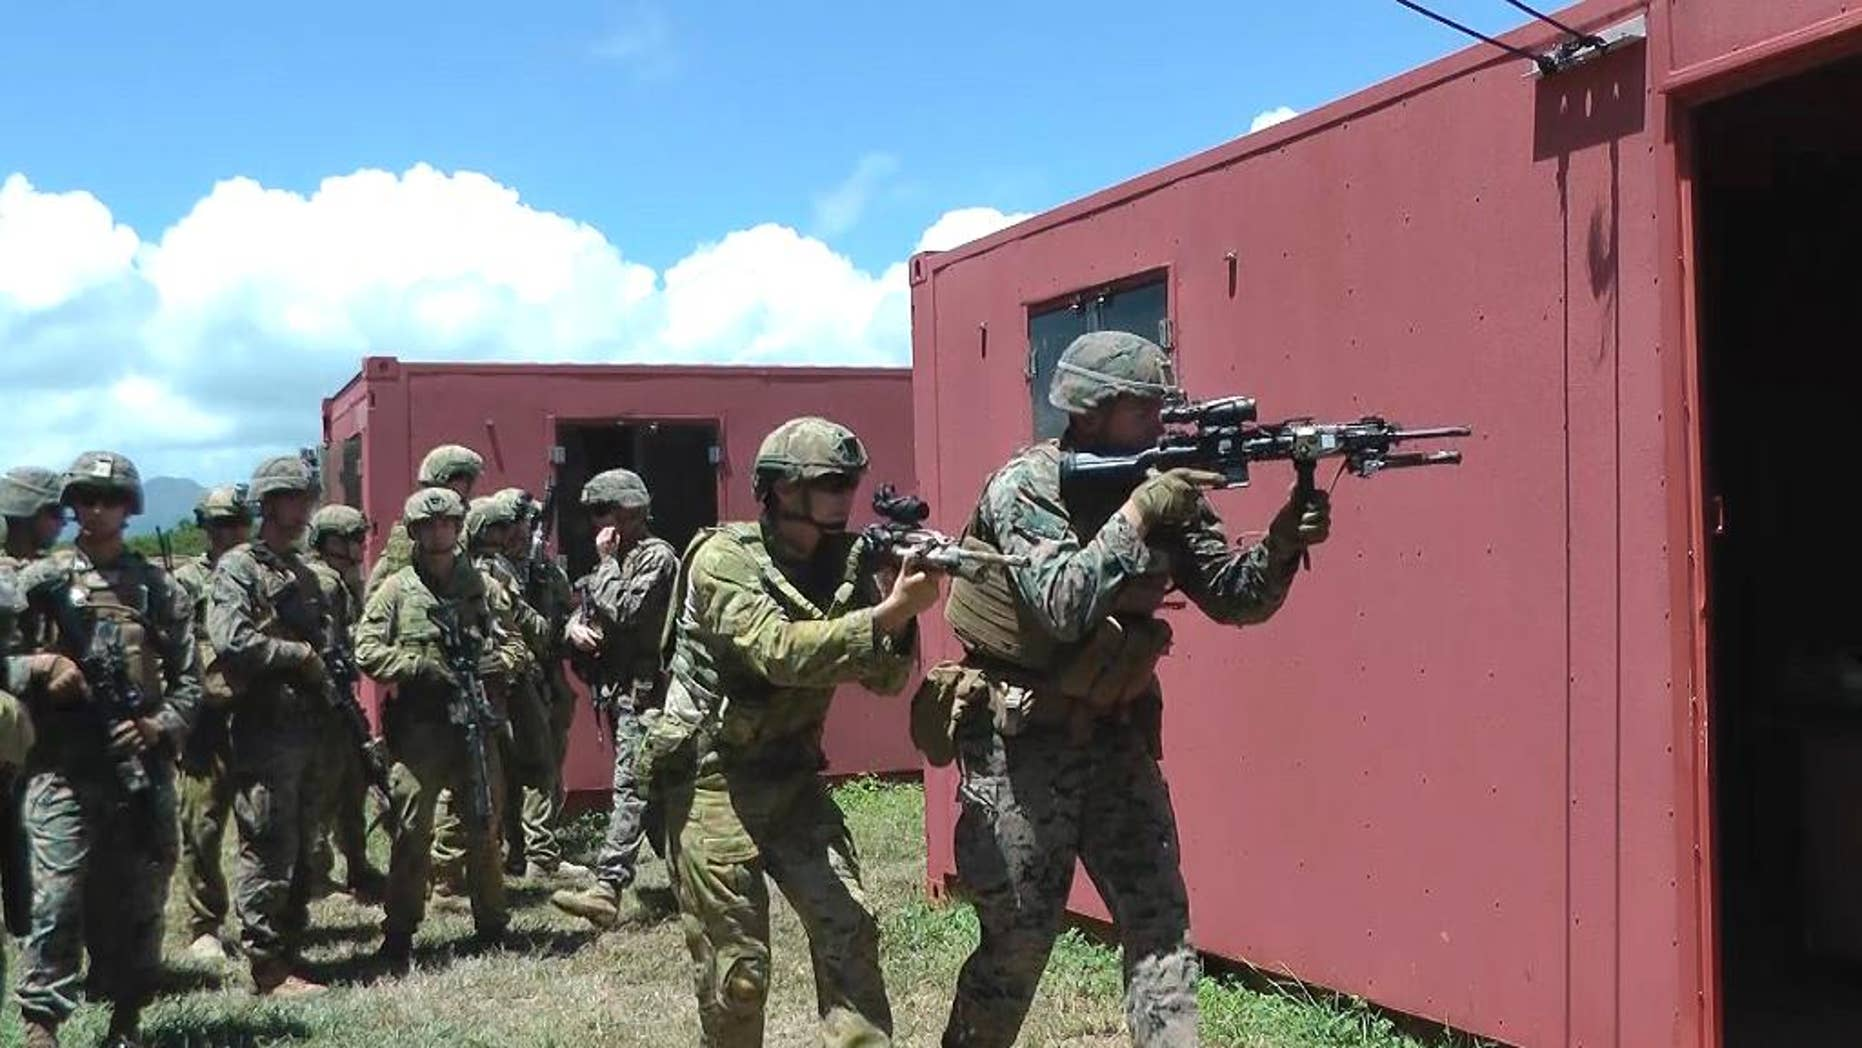 In this Thursday, July 7, 2016 photo, an Australian soldier, center left, and a U.S. Marine, right, get ready to raid a building at a mock urban combat training center in Kaneohe Bay, Hawaii. Australian soldiers are expected to lead a battalion of troops in the storming of a Hawaii beach during the world's largest maritime exercises this month, displaying the amphibious military skills they've been building up in recent years. (AP Photo/Audrey McAvoy)